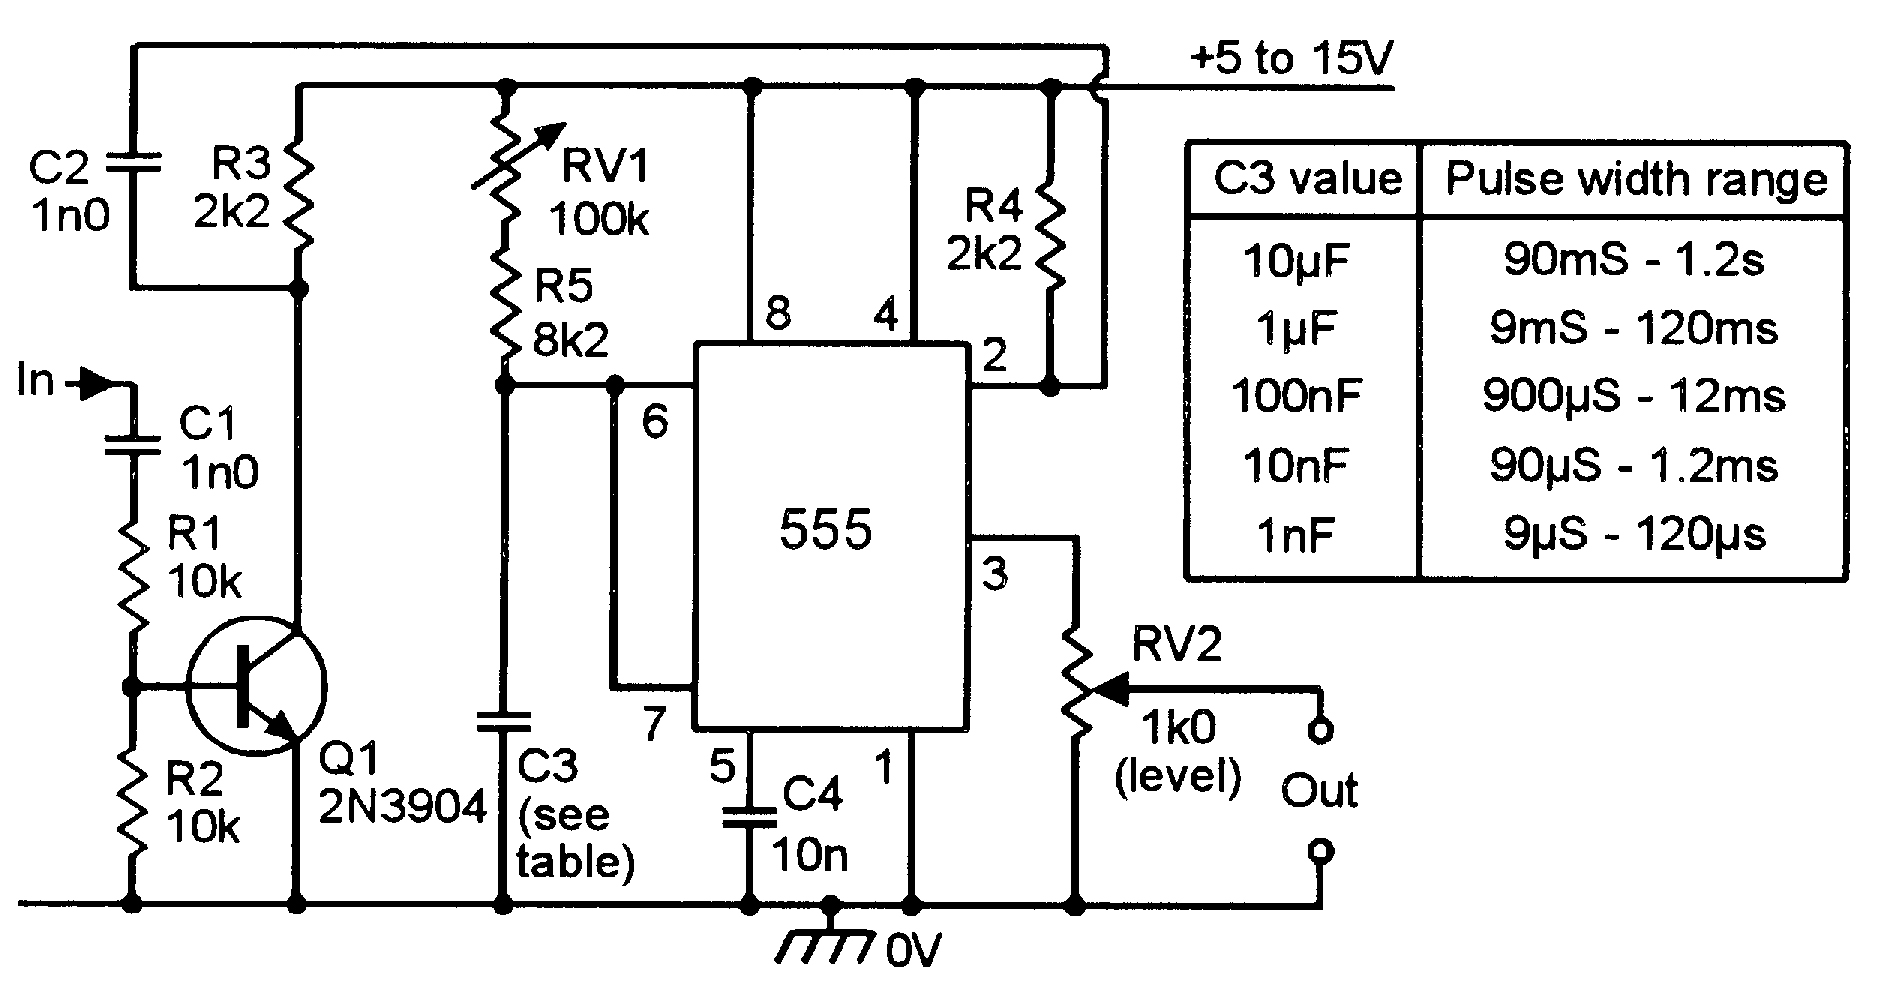 14 circuit wiring diagram pdf with Parallel Cable Wiring Diagram Pdf on TM 9 3405 206 14 P0026 also Lead Acid Battery Regulator For Solar additionally Meyer Plow Wiring Diagram likewise Power Supply Based Projects besides howtowireit   wiringa3wayswitch.